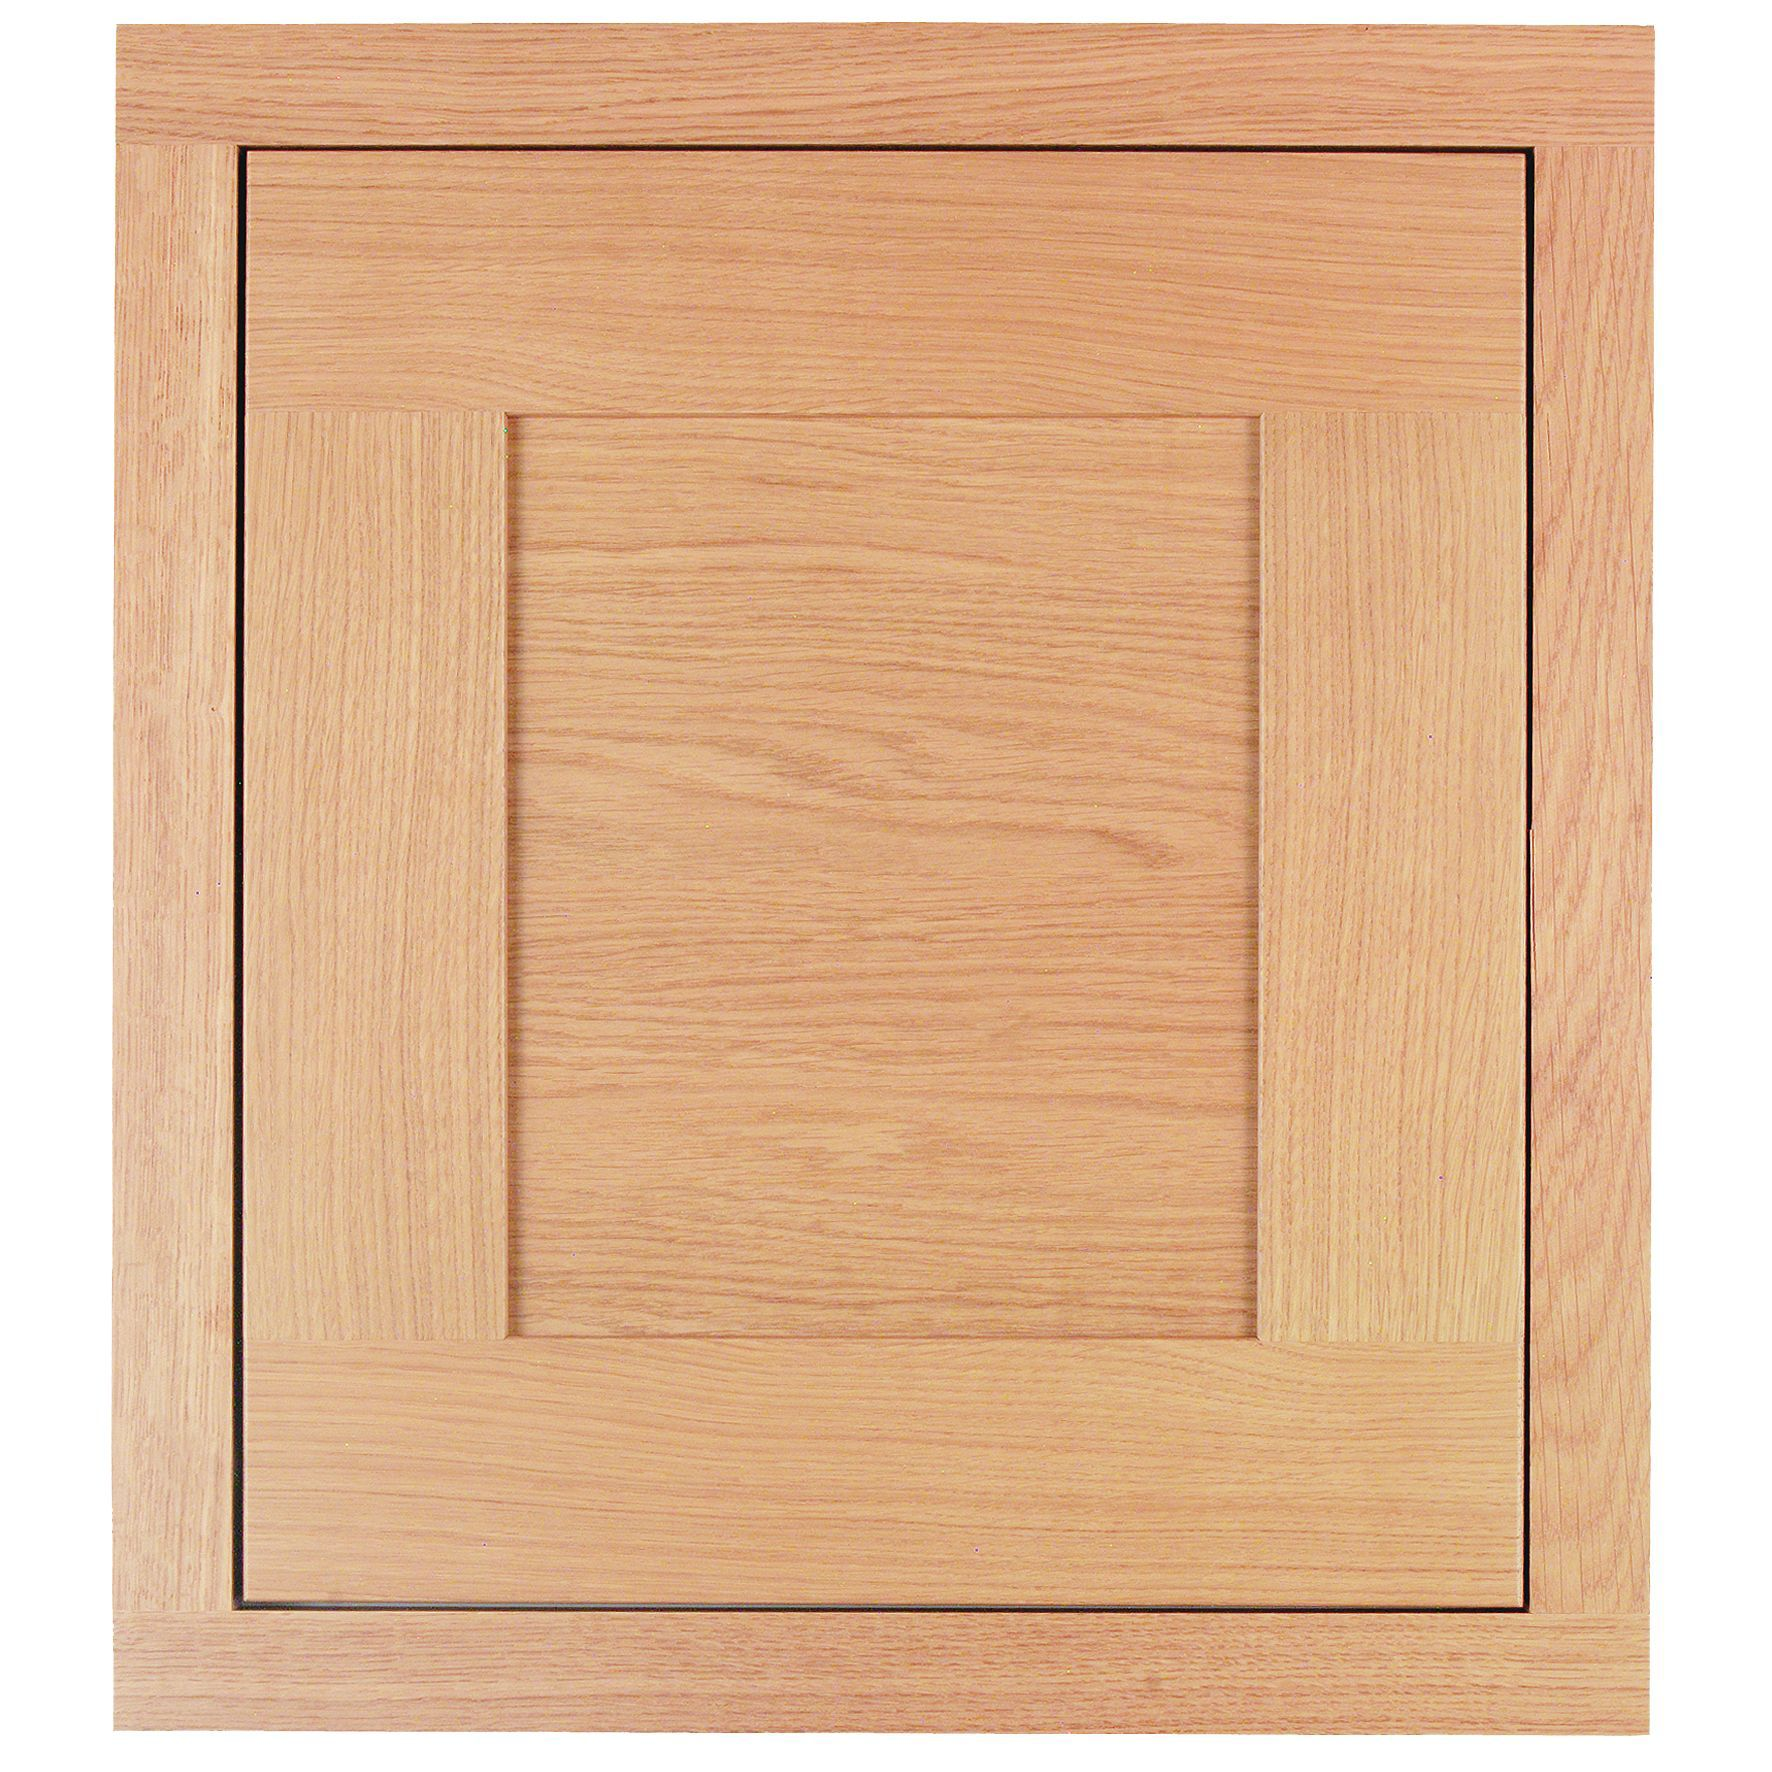 Cooke & Lewis Carisbrooke Oak Framed Deep Bridging Door (w)500mm